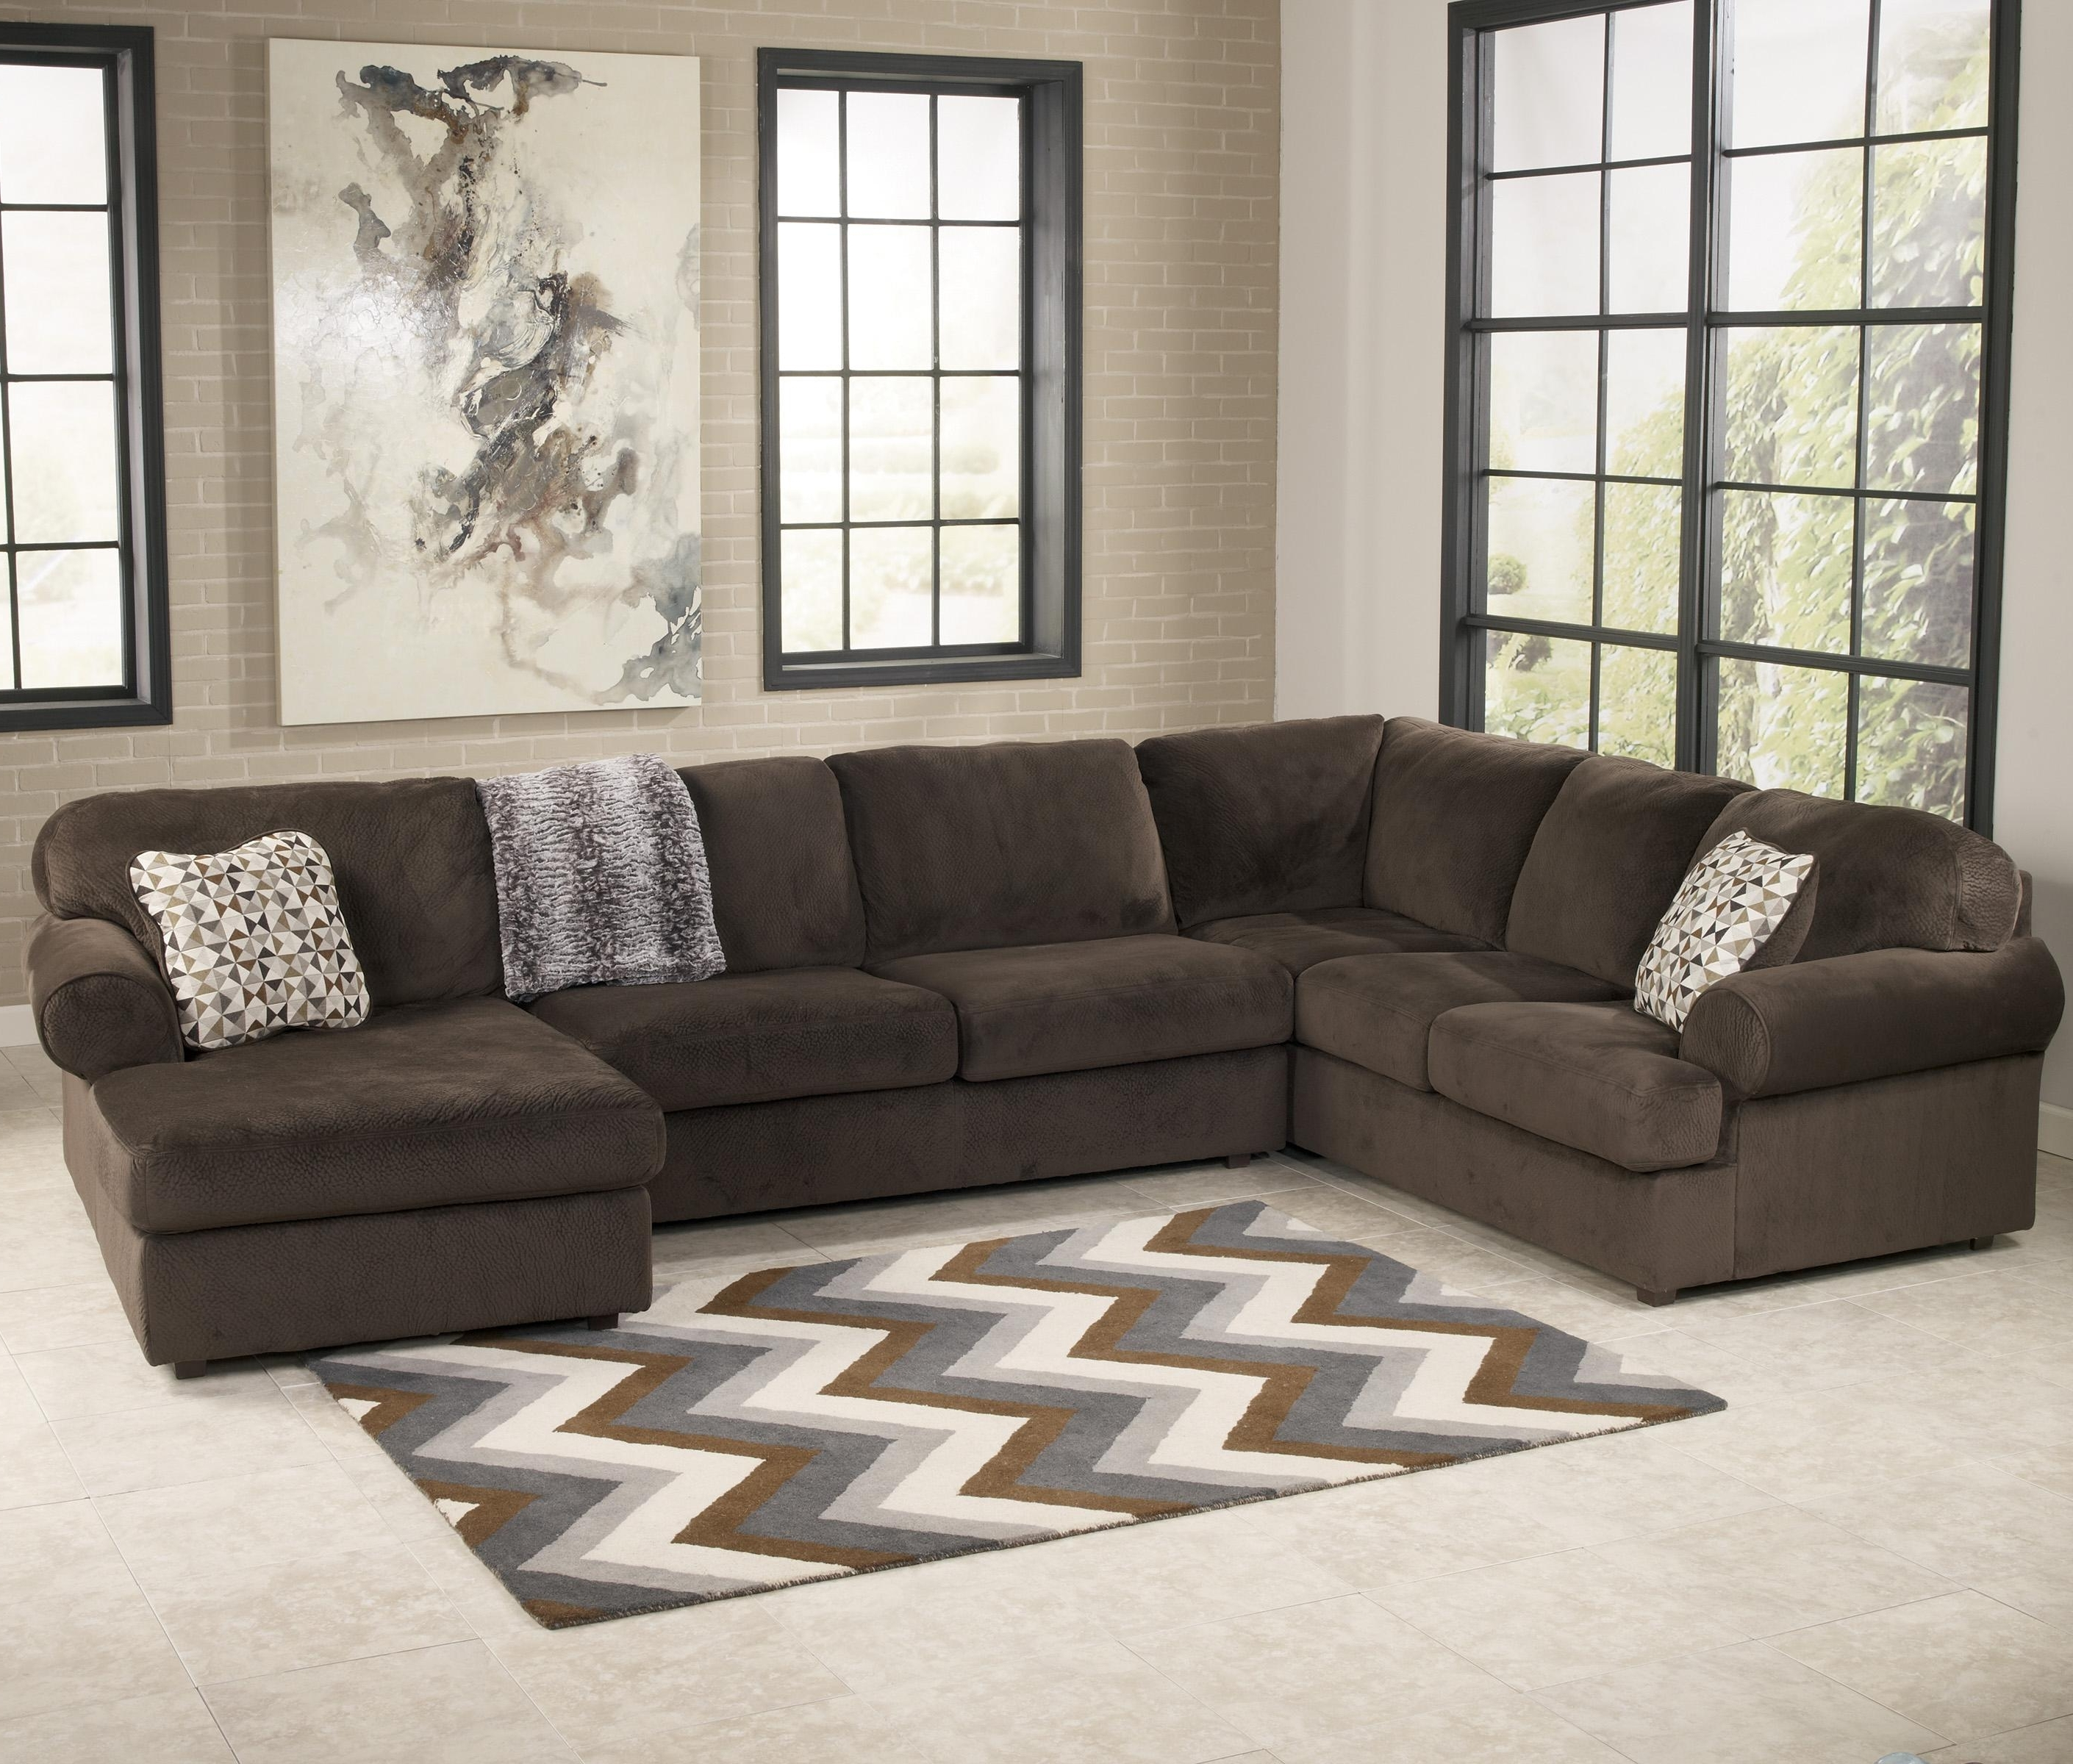 2017 Signature Designashley Jessa Place – Chocolate Casual In Ashley Chaise Sofas (View 1 of 15)